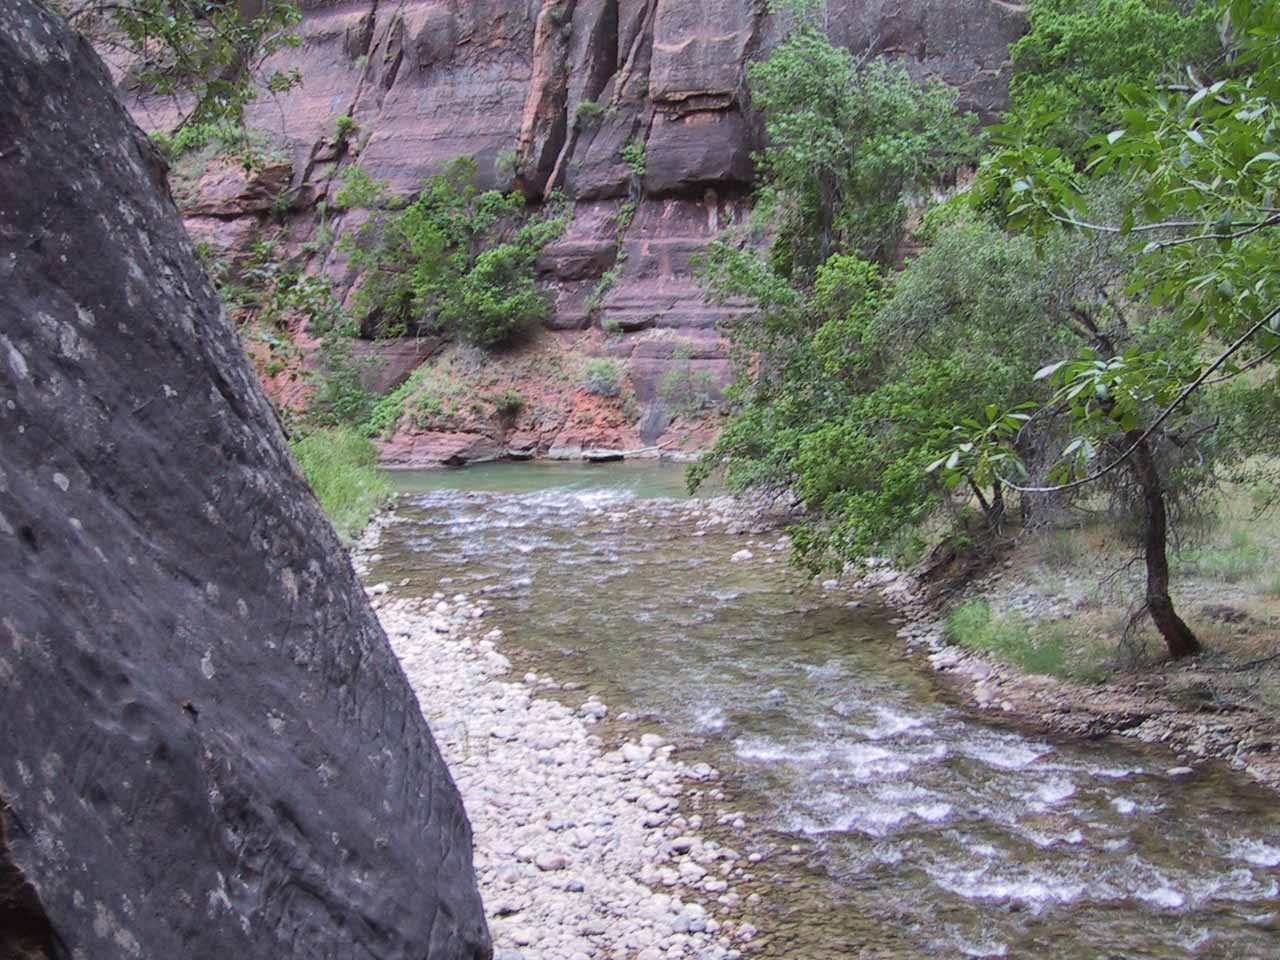 The Virgin River as seen from the Riverside Trail